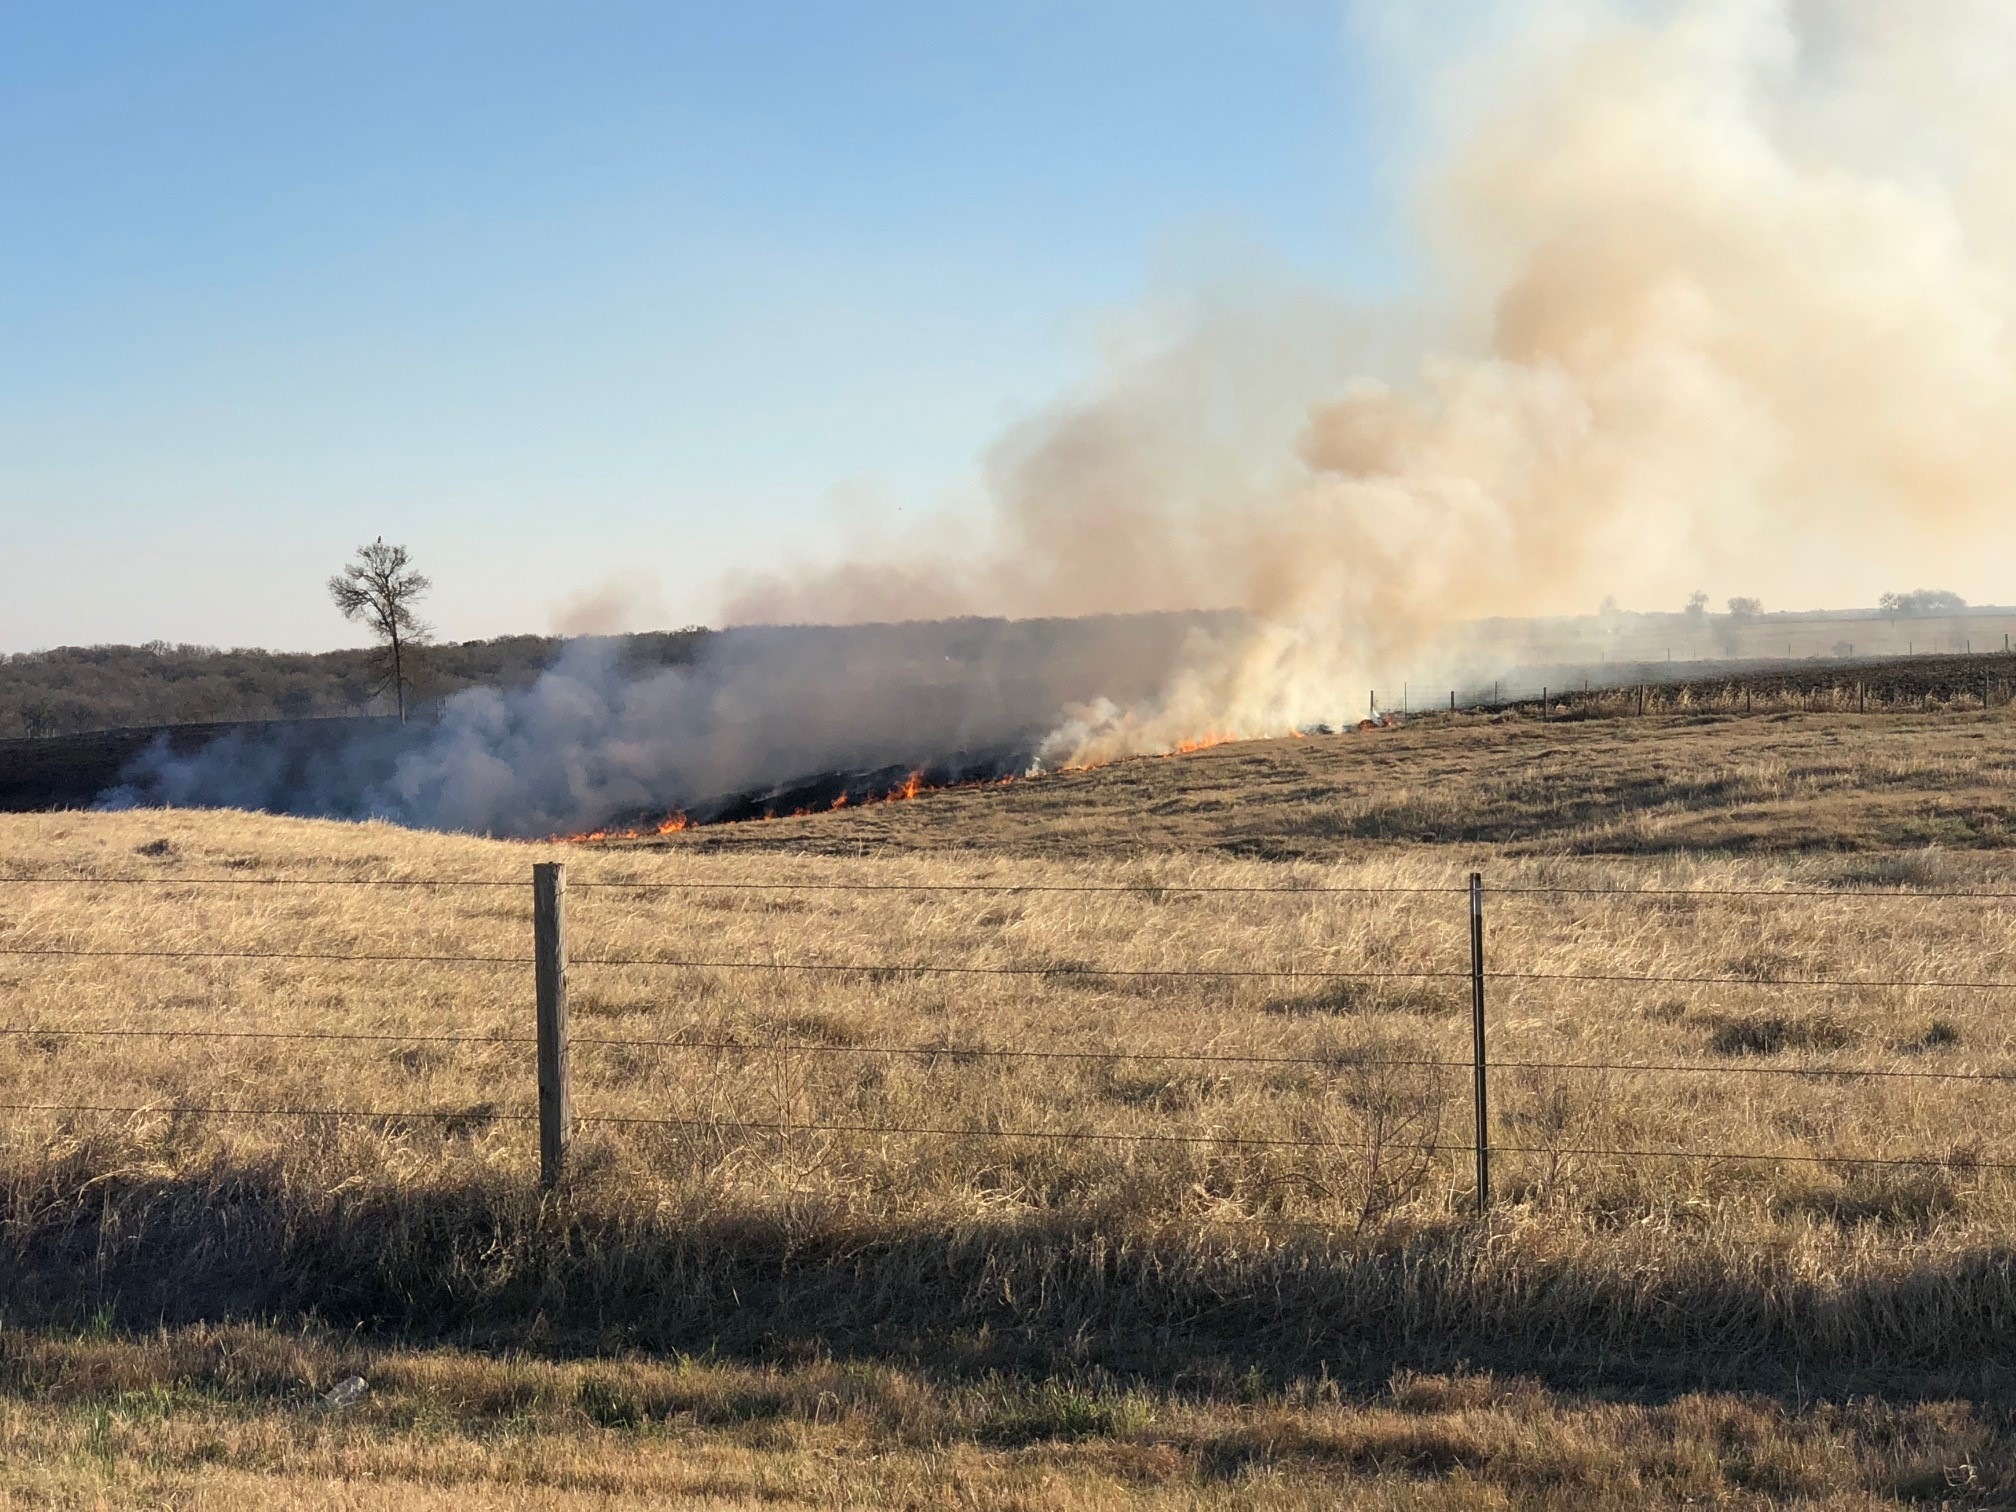 The fire started around 3:15 p.m. along County Road 483 just east of State Highway 95, south of Taylor. (KXAN Photo/Todd Bynum)